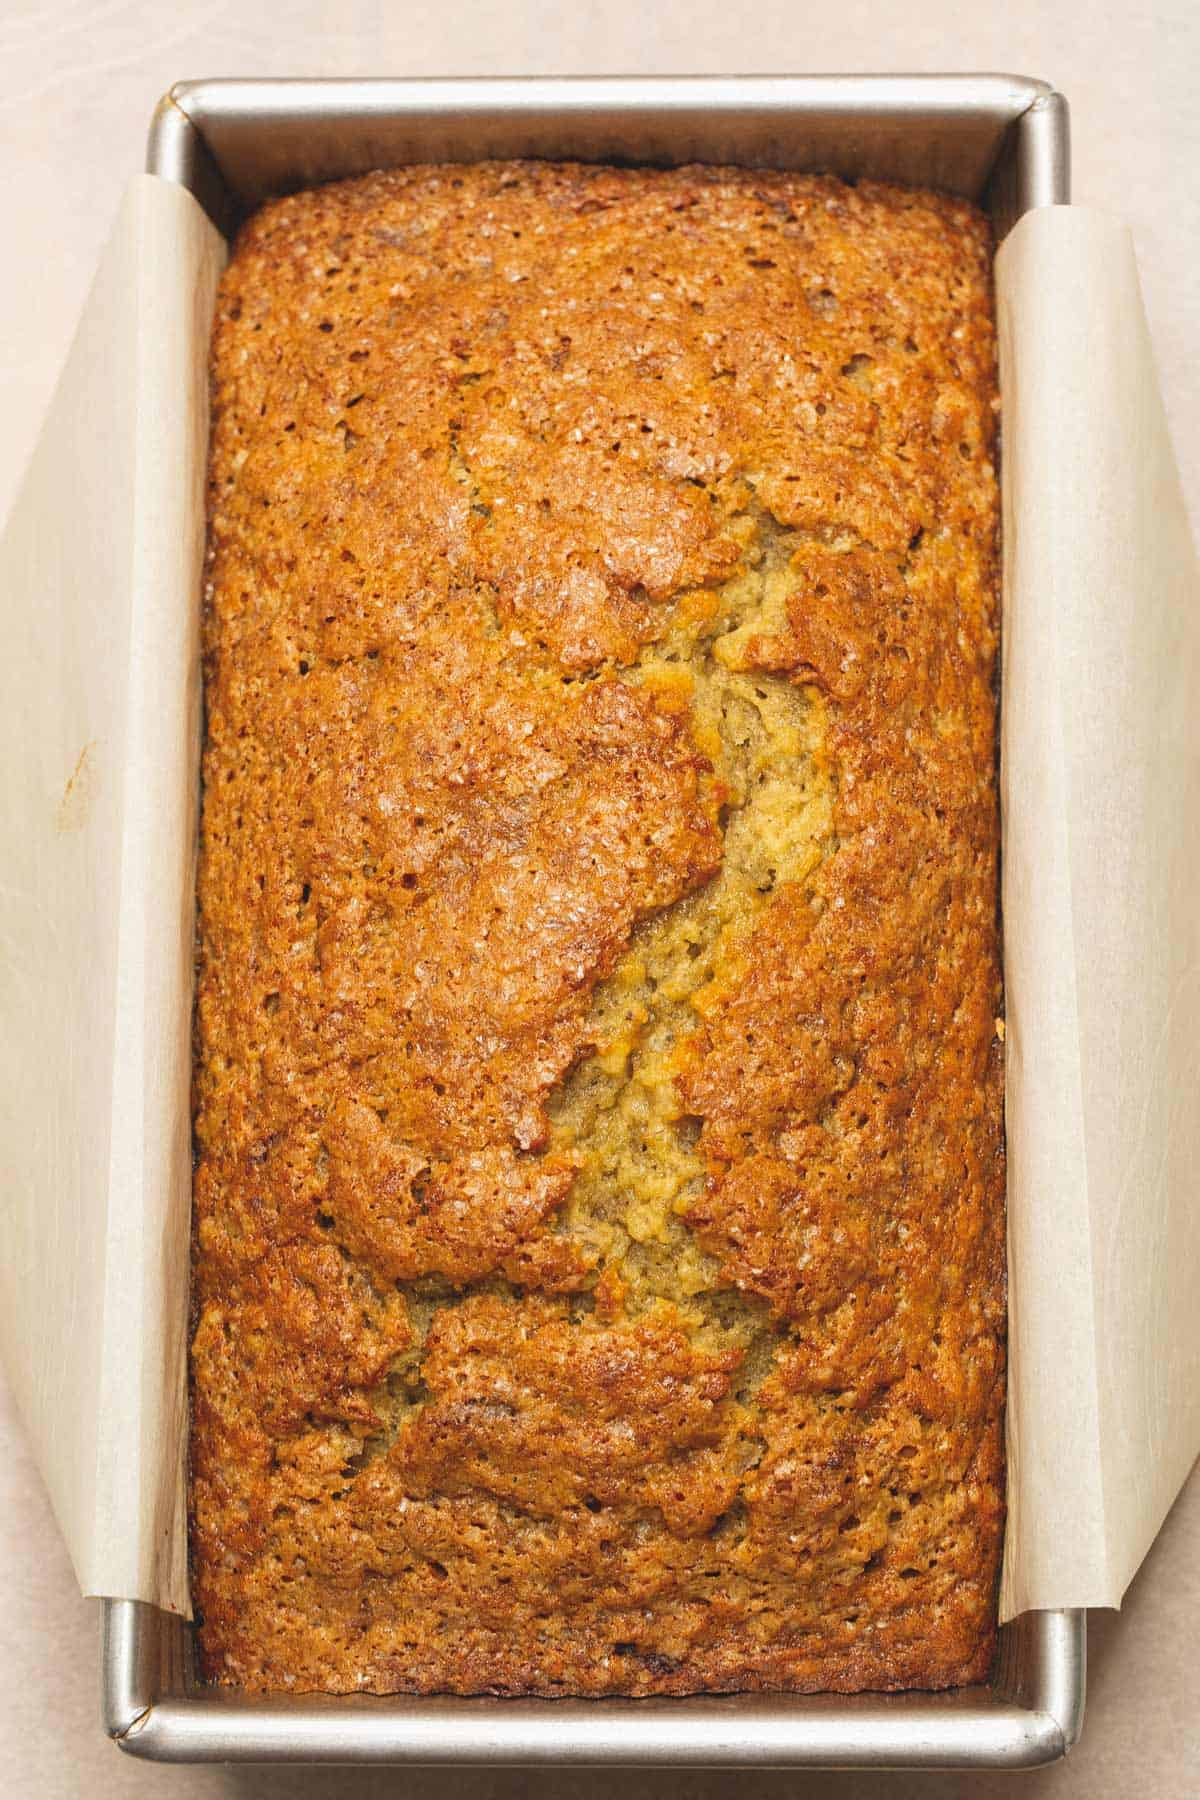 A loaf of banana bread in a parchment paper lined pan.